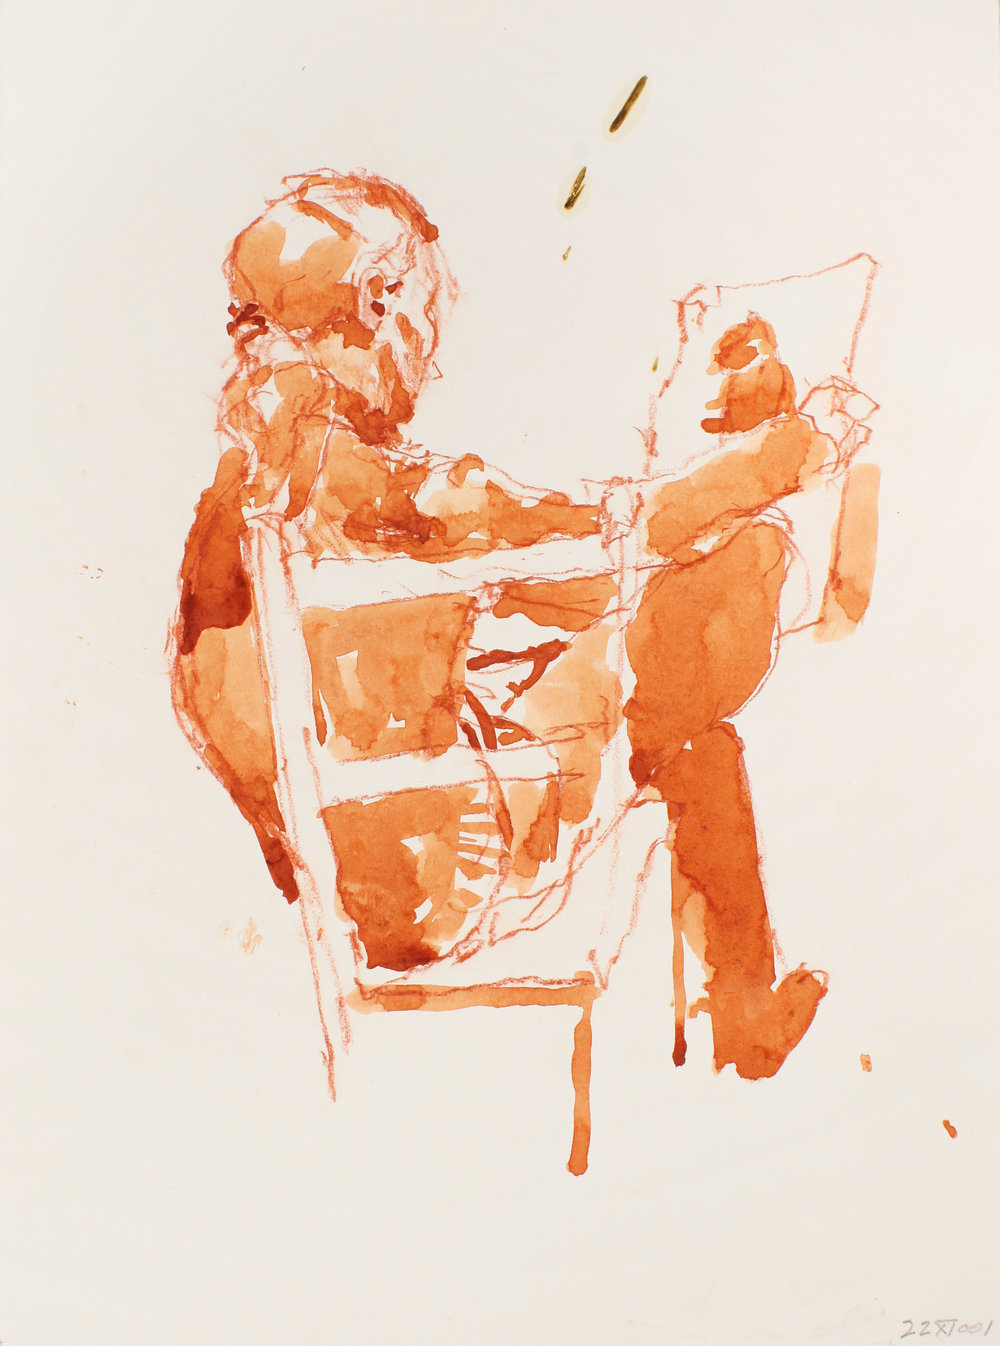 2001_Figure_Holdin_a_Drawing_red_conte_and_watercolour_on_paper_15x11in_38x28cm_WPF135.jpg